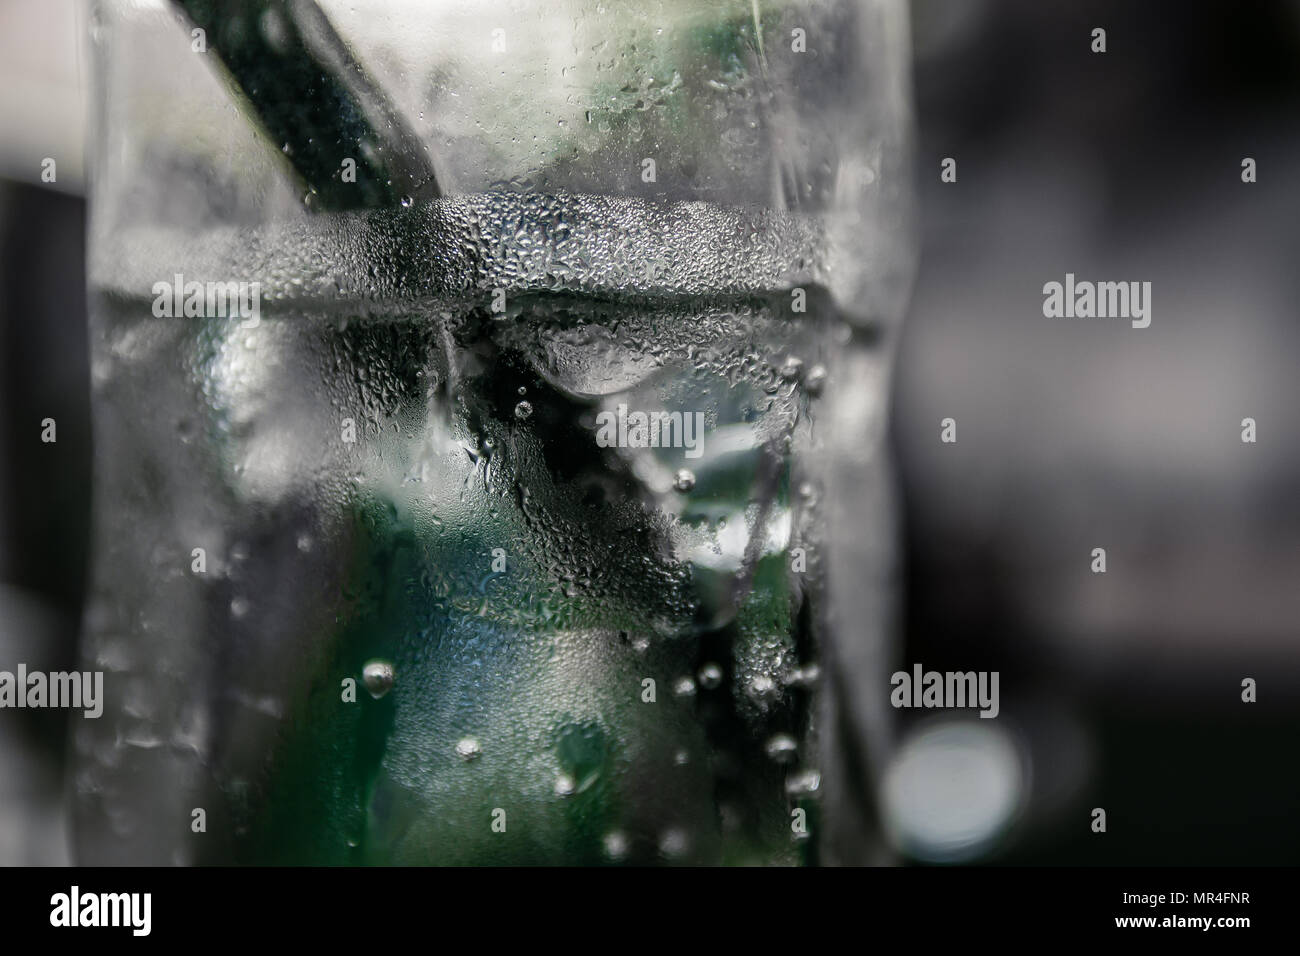 Close up of glass with sparkling water in it. There is a black straw inside the glass. Blurred green bottle behind the glass. - Stock Image